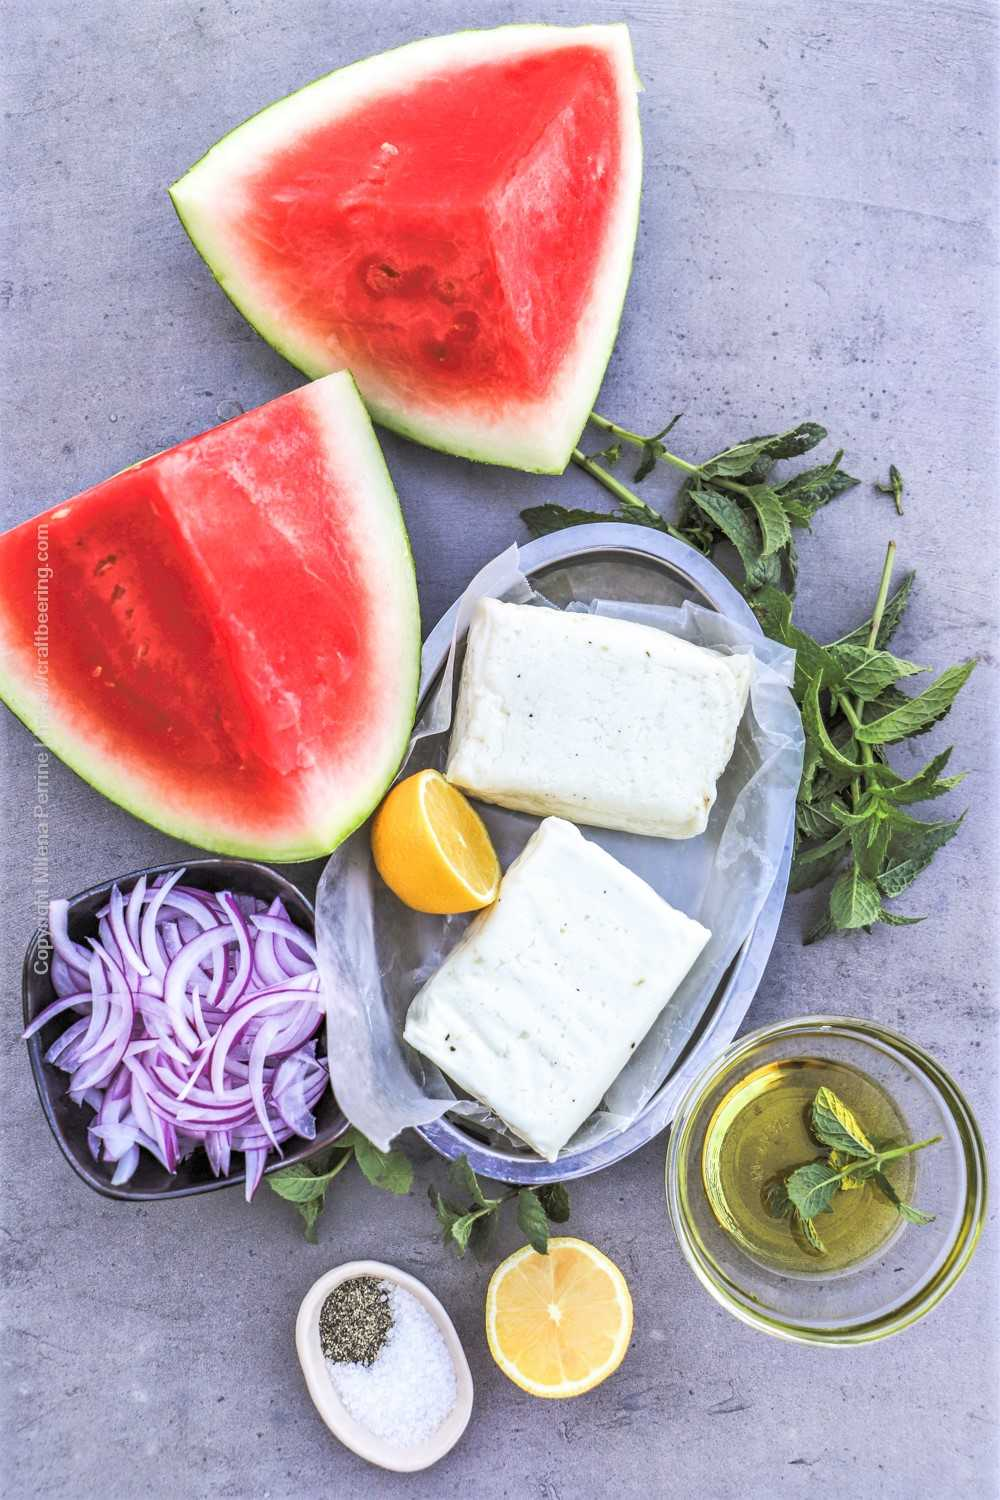 Halloumi cheese blocks, watermelon, red onion, mint, lemon, salt and pepper, olive oil - all the ingredietns to make grilled halloumi salad.